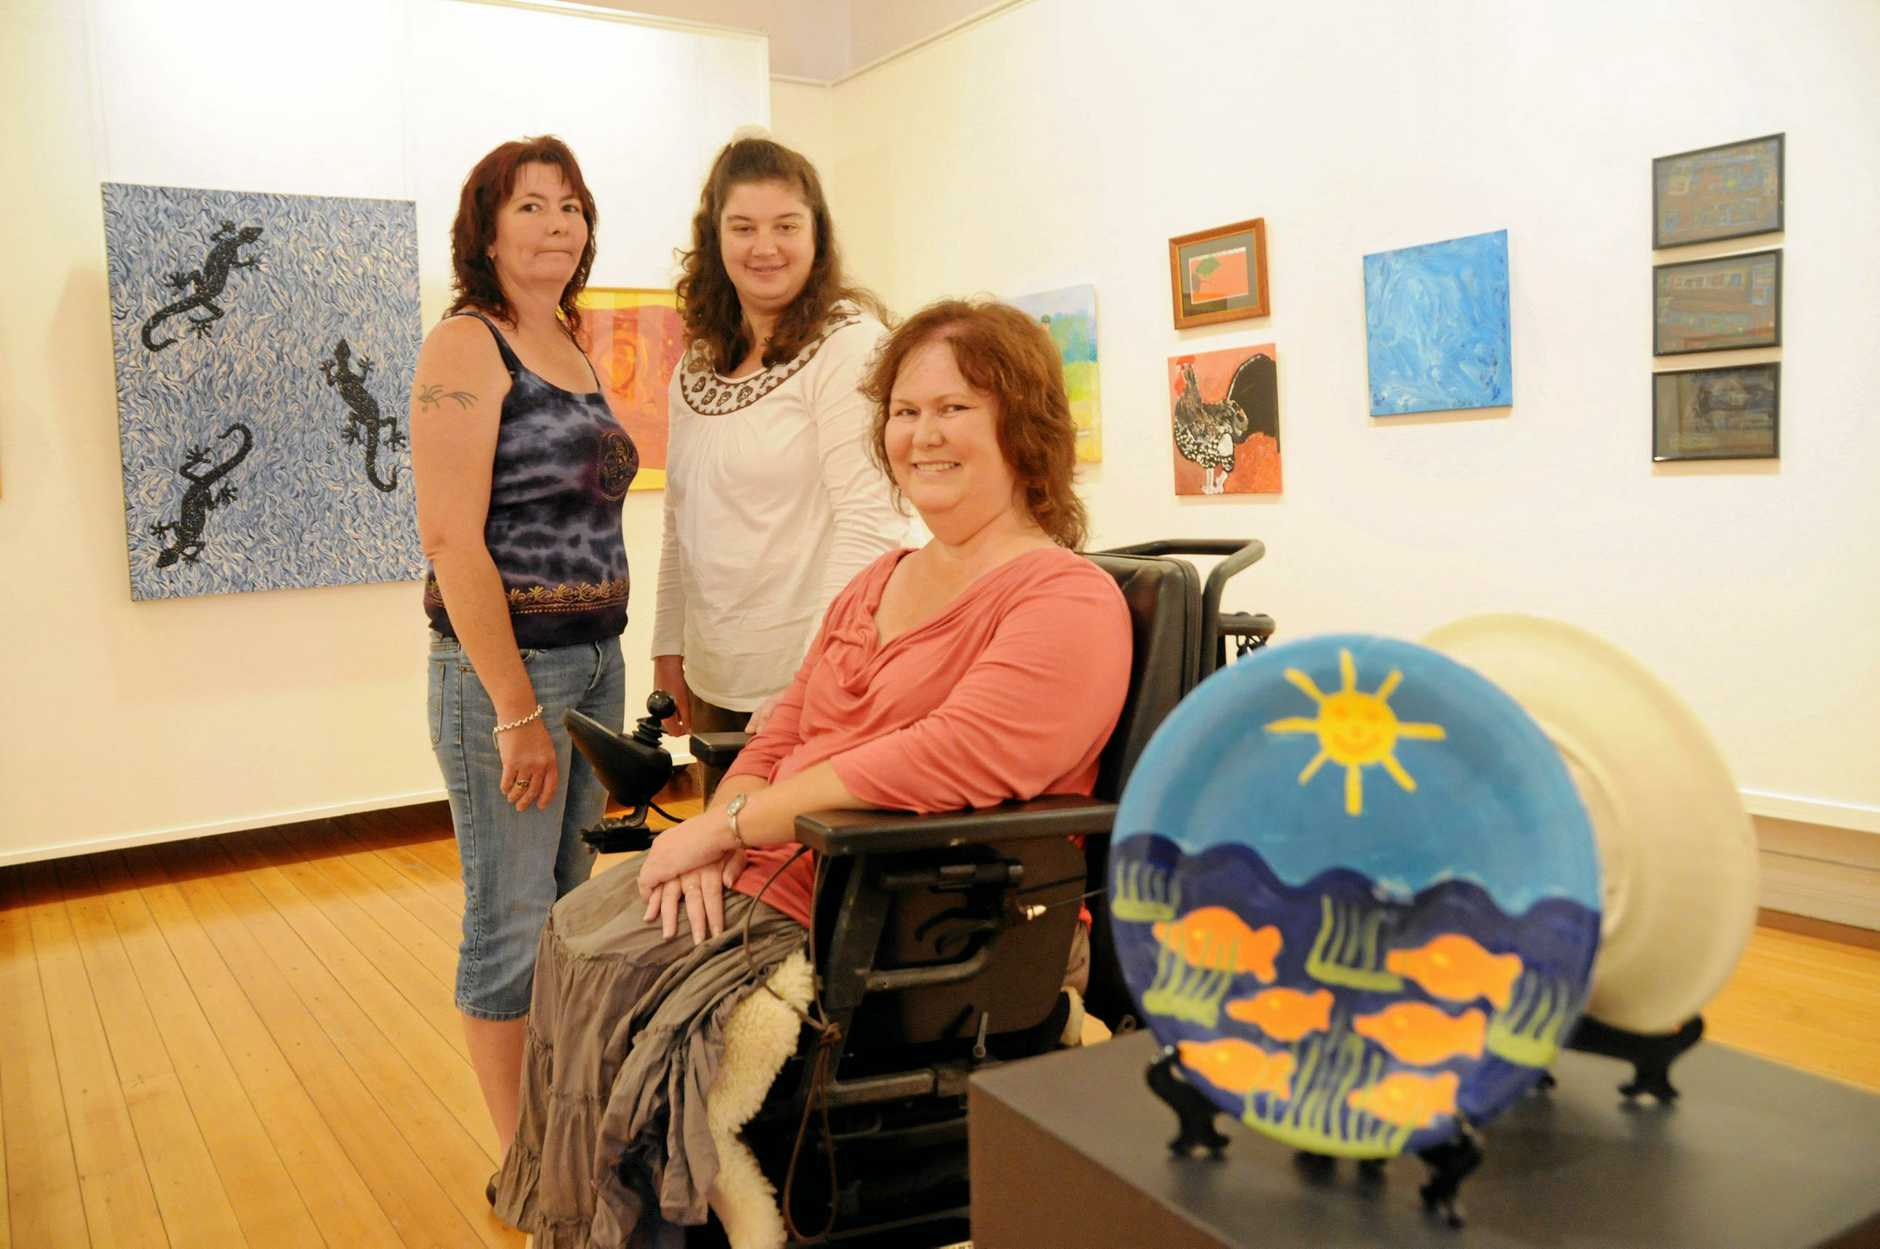 Natalie Ellis with Erin Neilson and Roxanne McGregor in the art gallery for Disability Action Week.